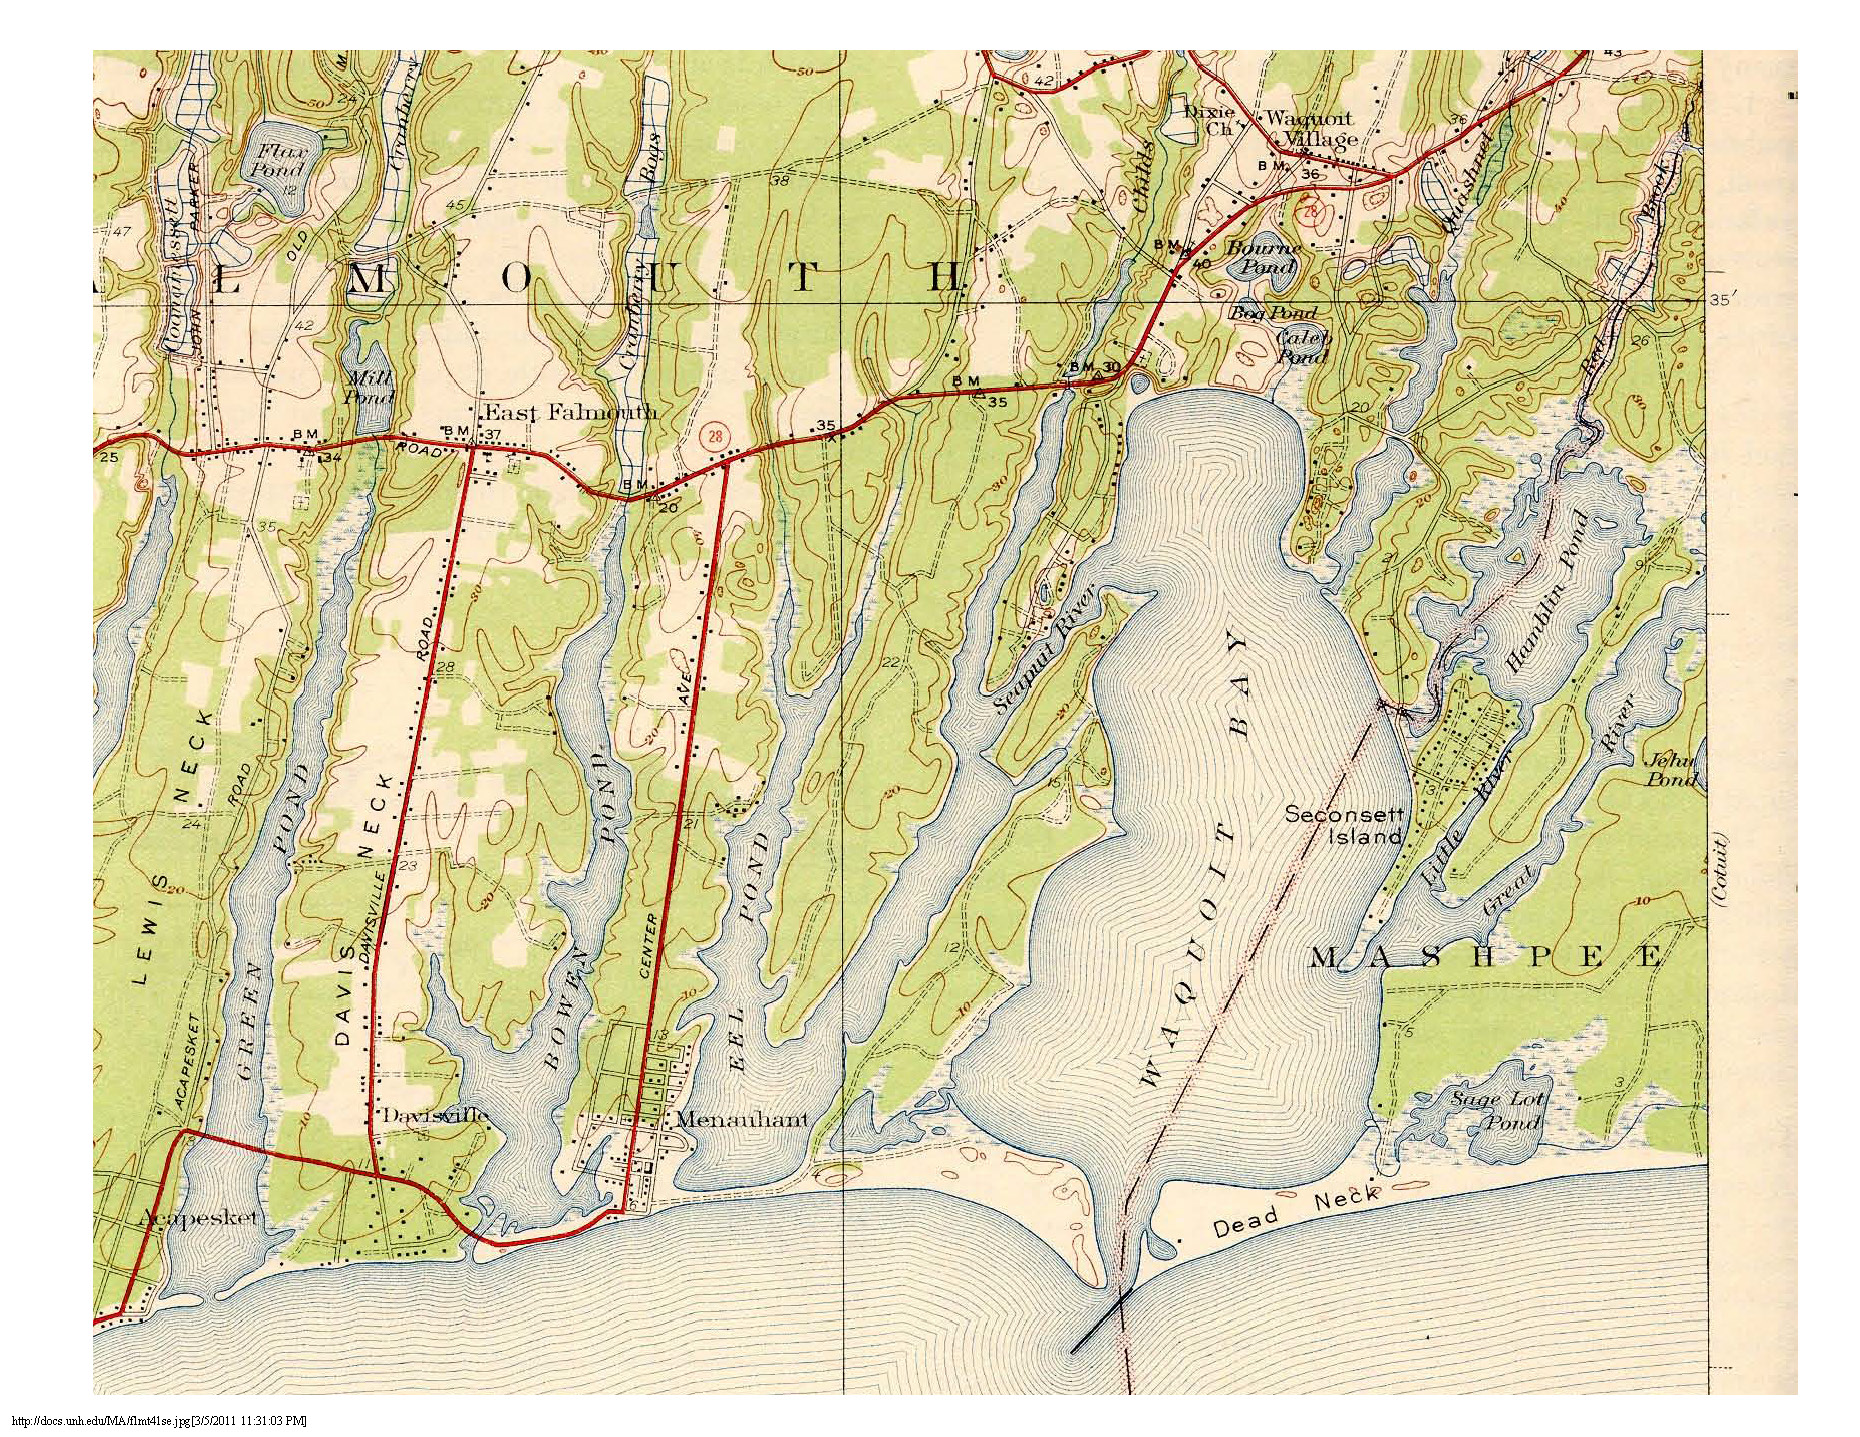 1927 map depicting the same area.